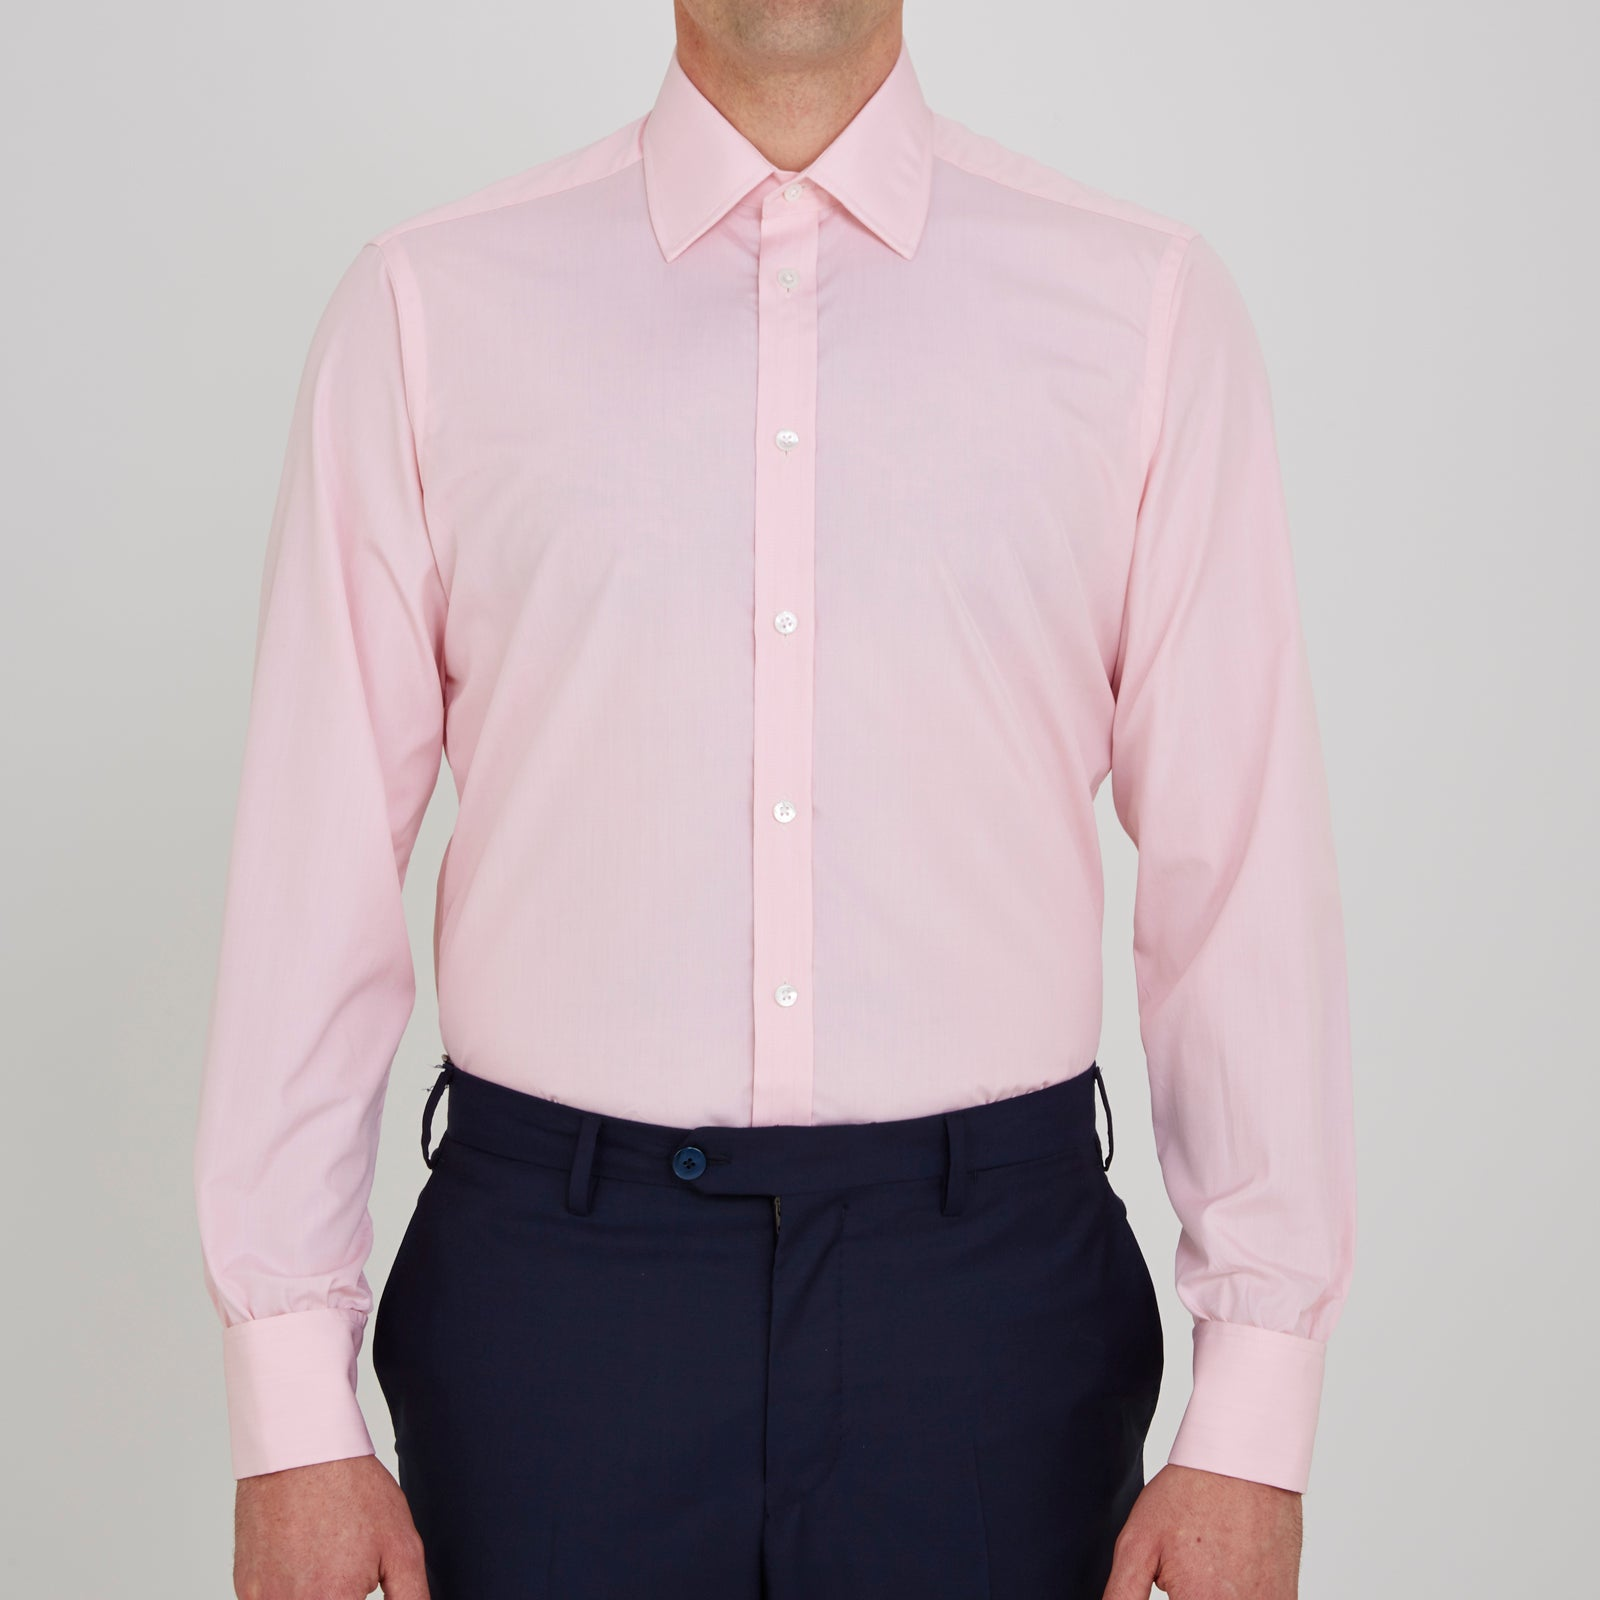 Pink End-on-End Shirt with T&A Collar and Double Cuffs